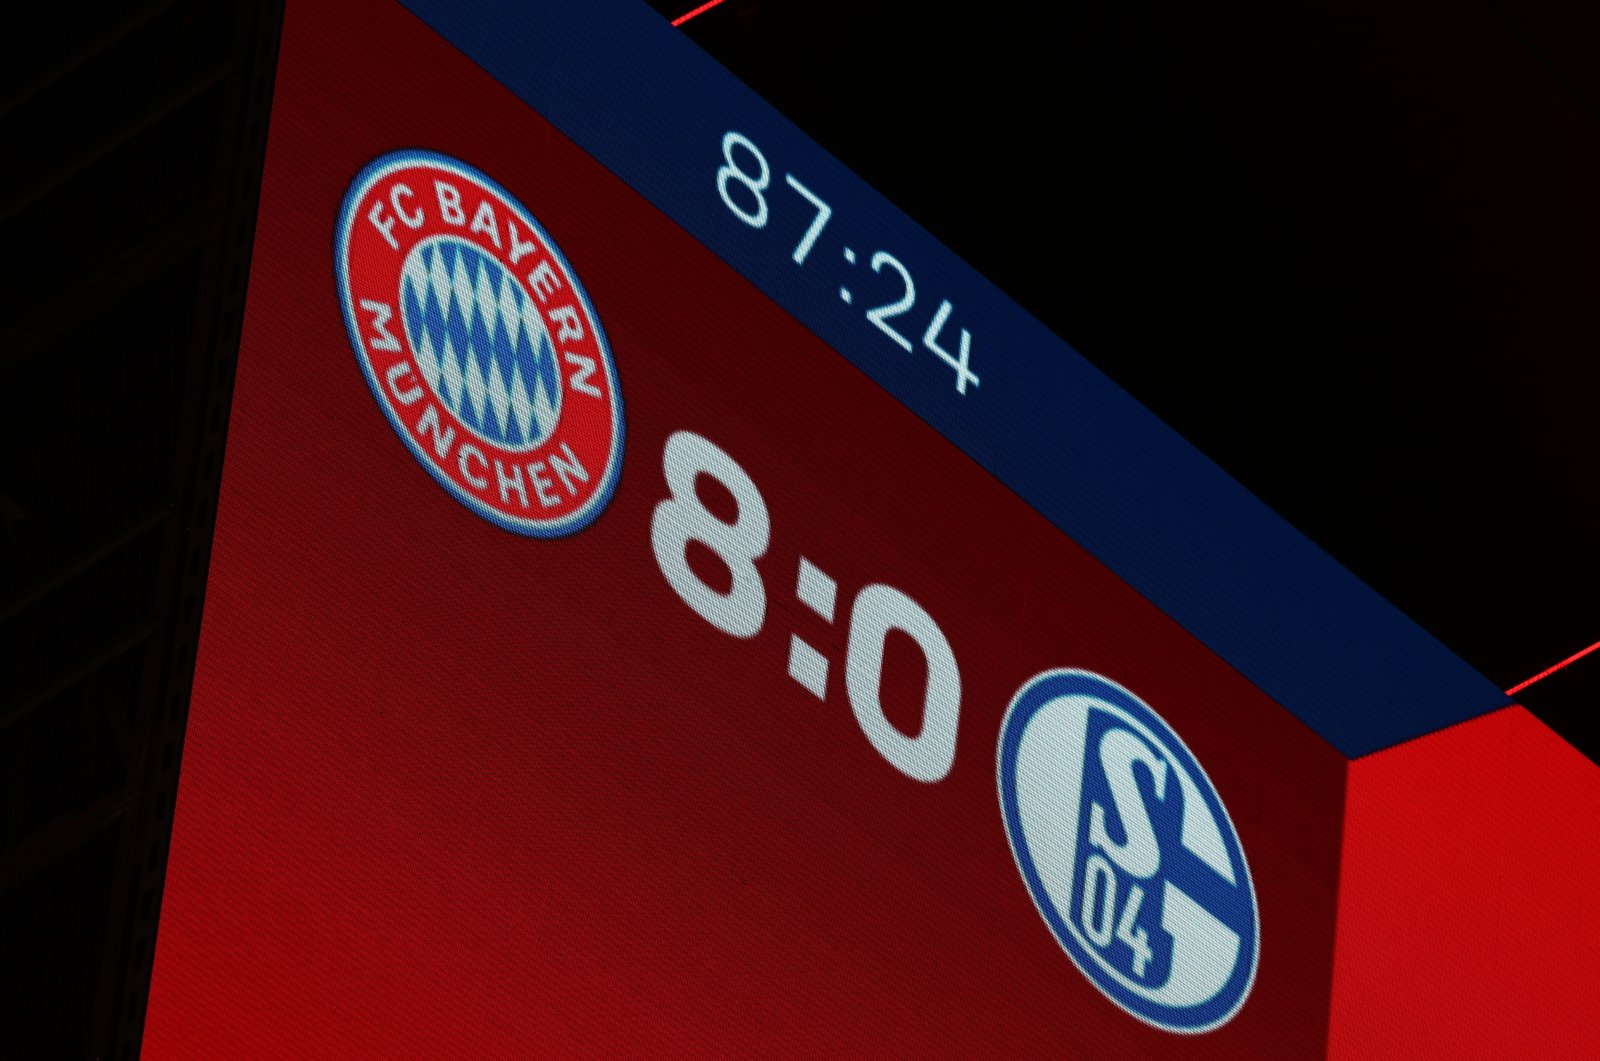 A general view of the scoreboard during the Bundesliga match between Bayern Munich and Schalke, in Munich, Germany, Sept. 18, 2020. (AP Photo)